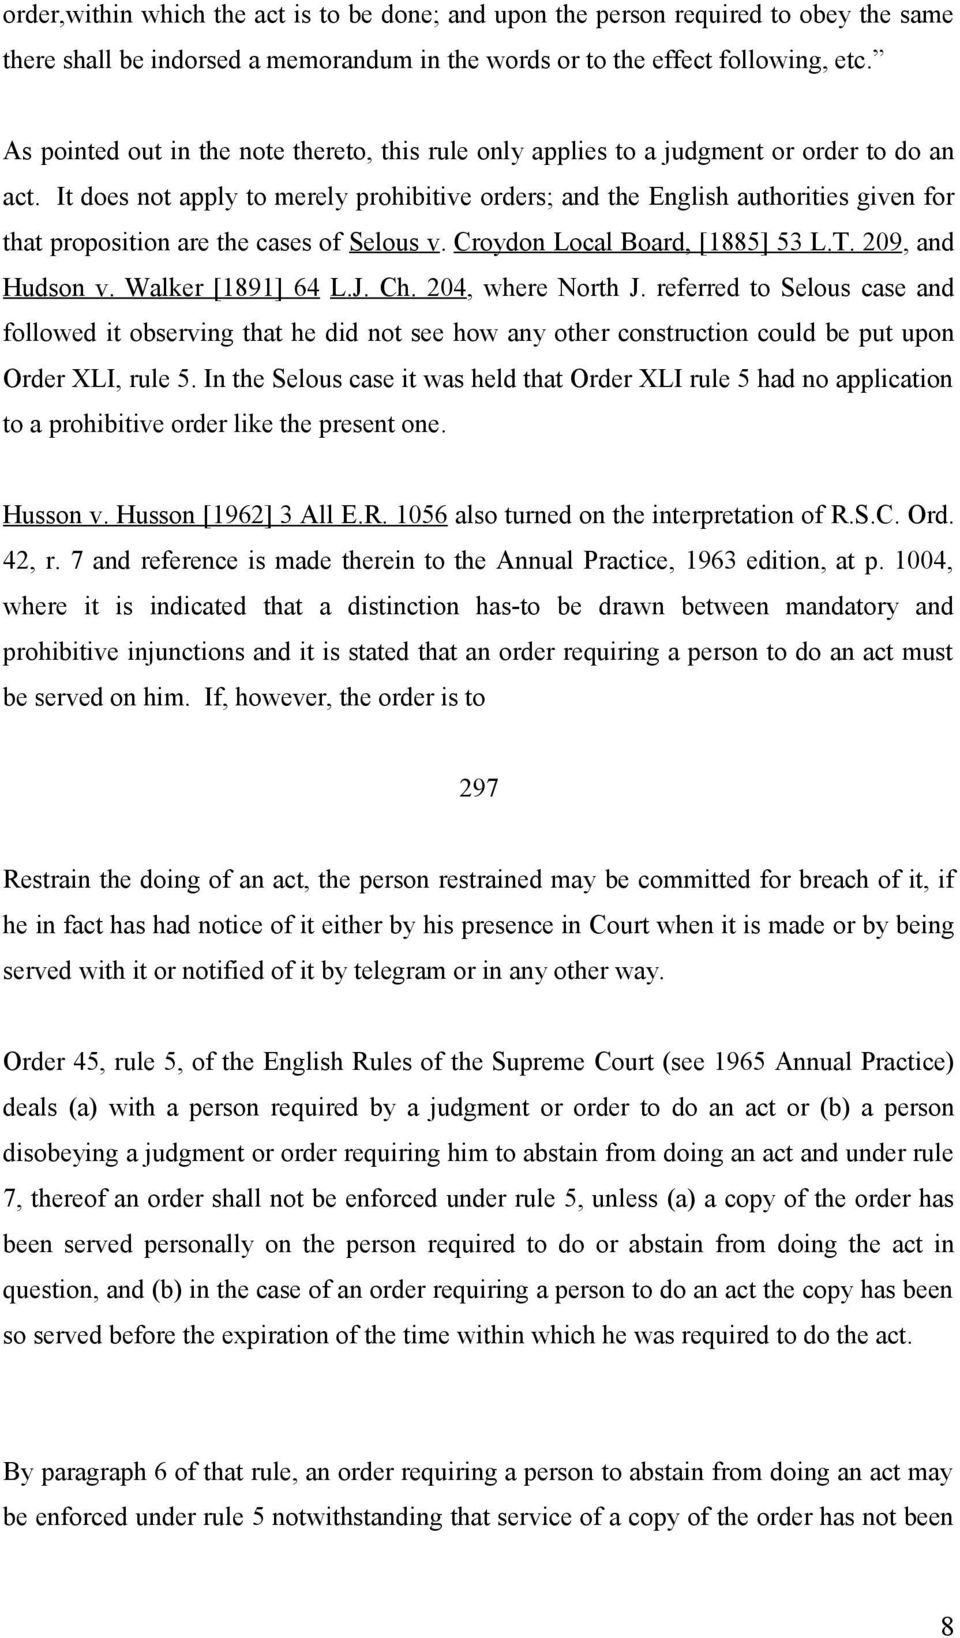 It does not apply to merely prohibitive orders; and the English authorities given for that proposition are the cases of Selous v. Croydon Local Board, [1885] 53 L.T. 209, and Hudson v.